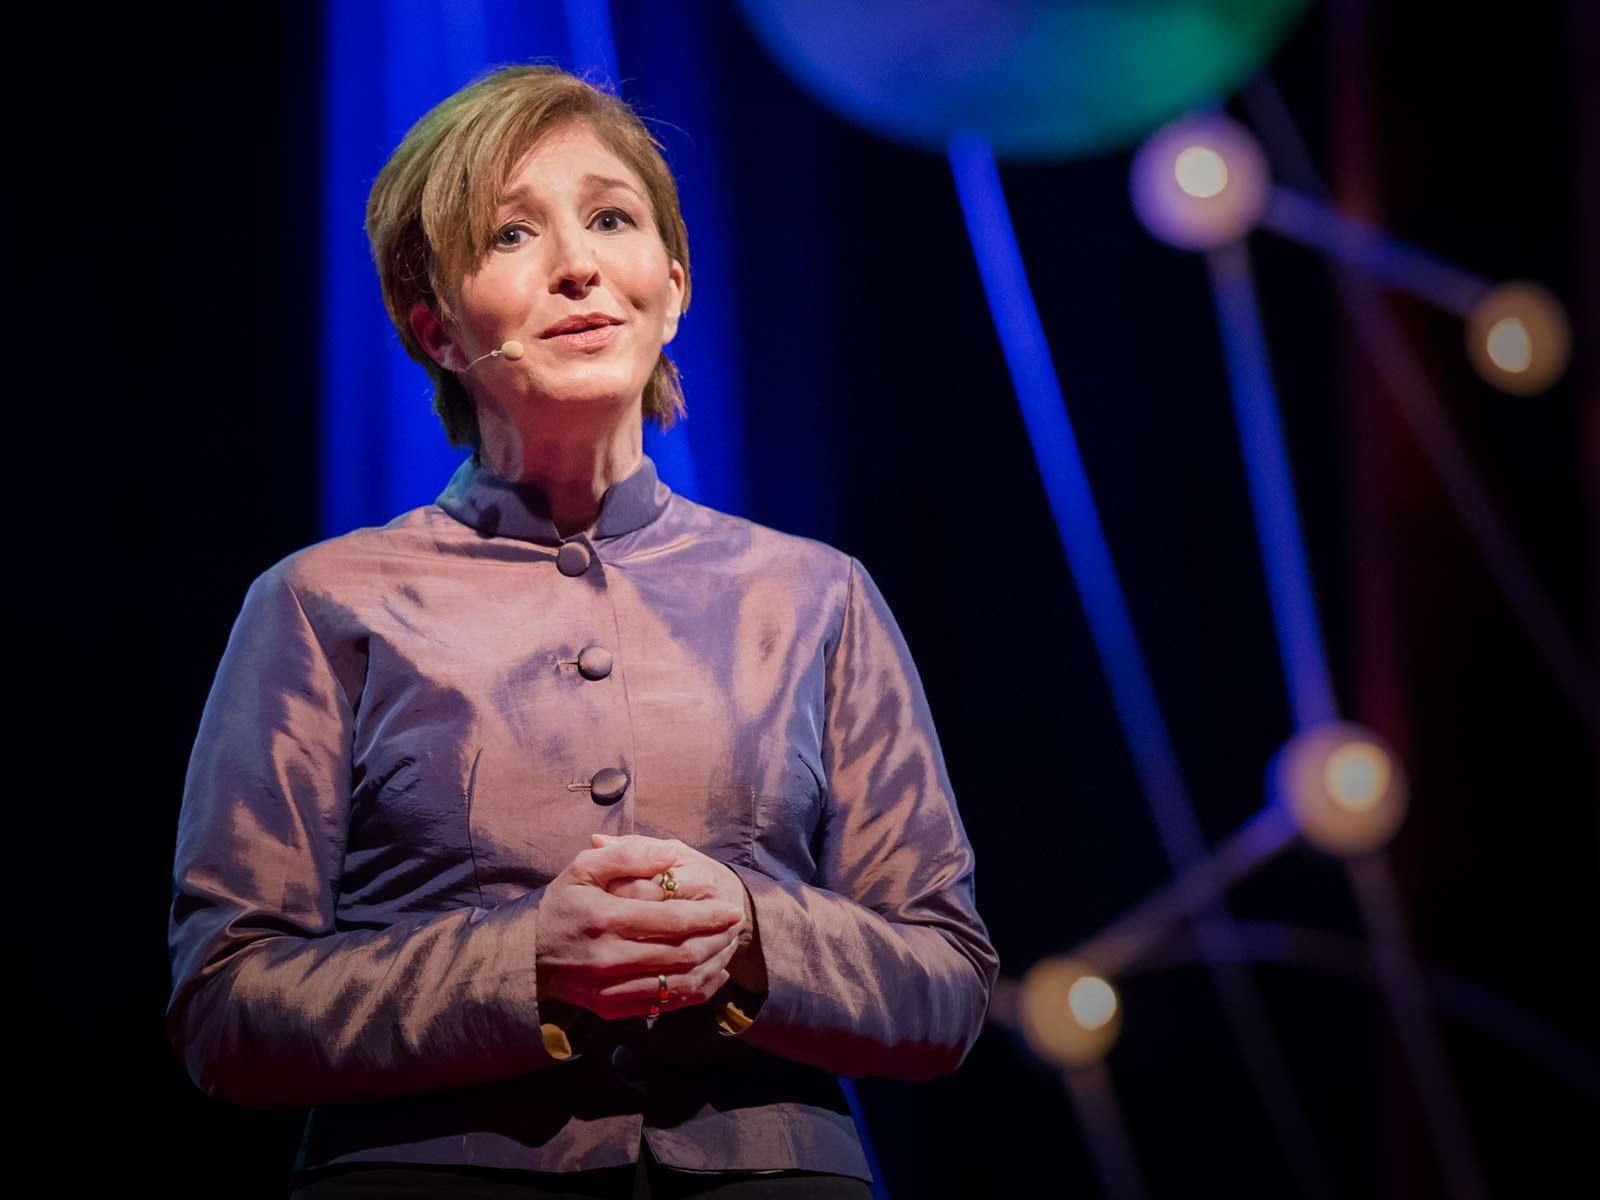 Picture of Anne-Marie Slaughter at her TED talk